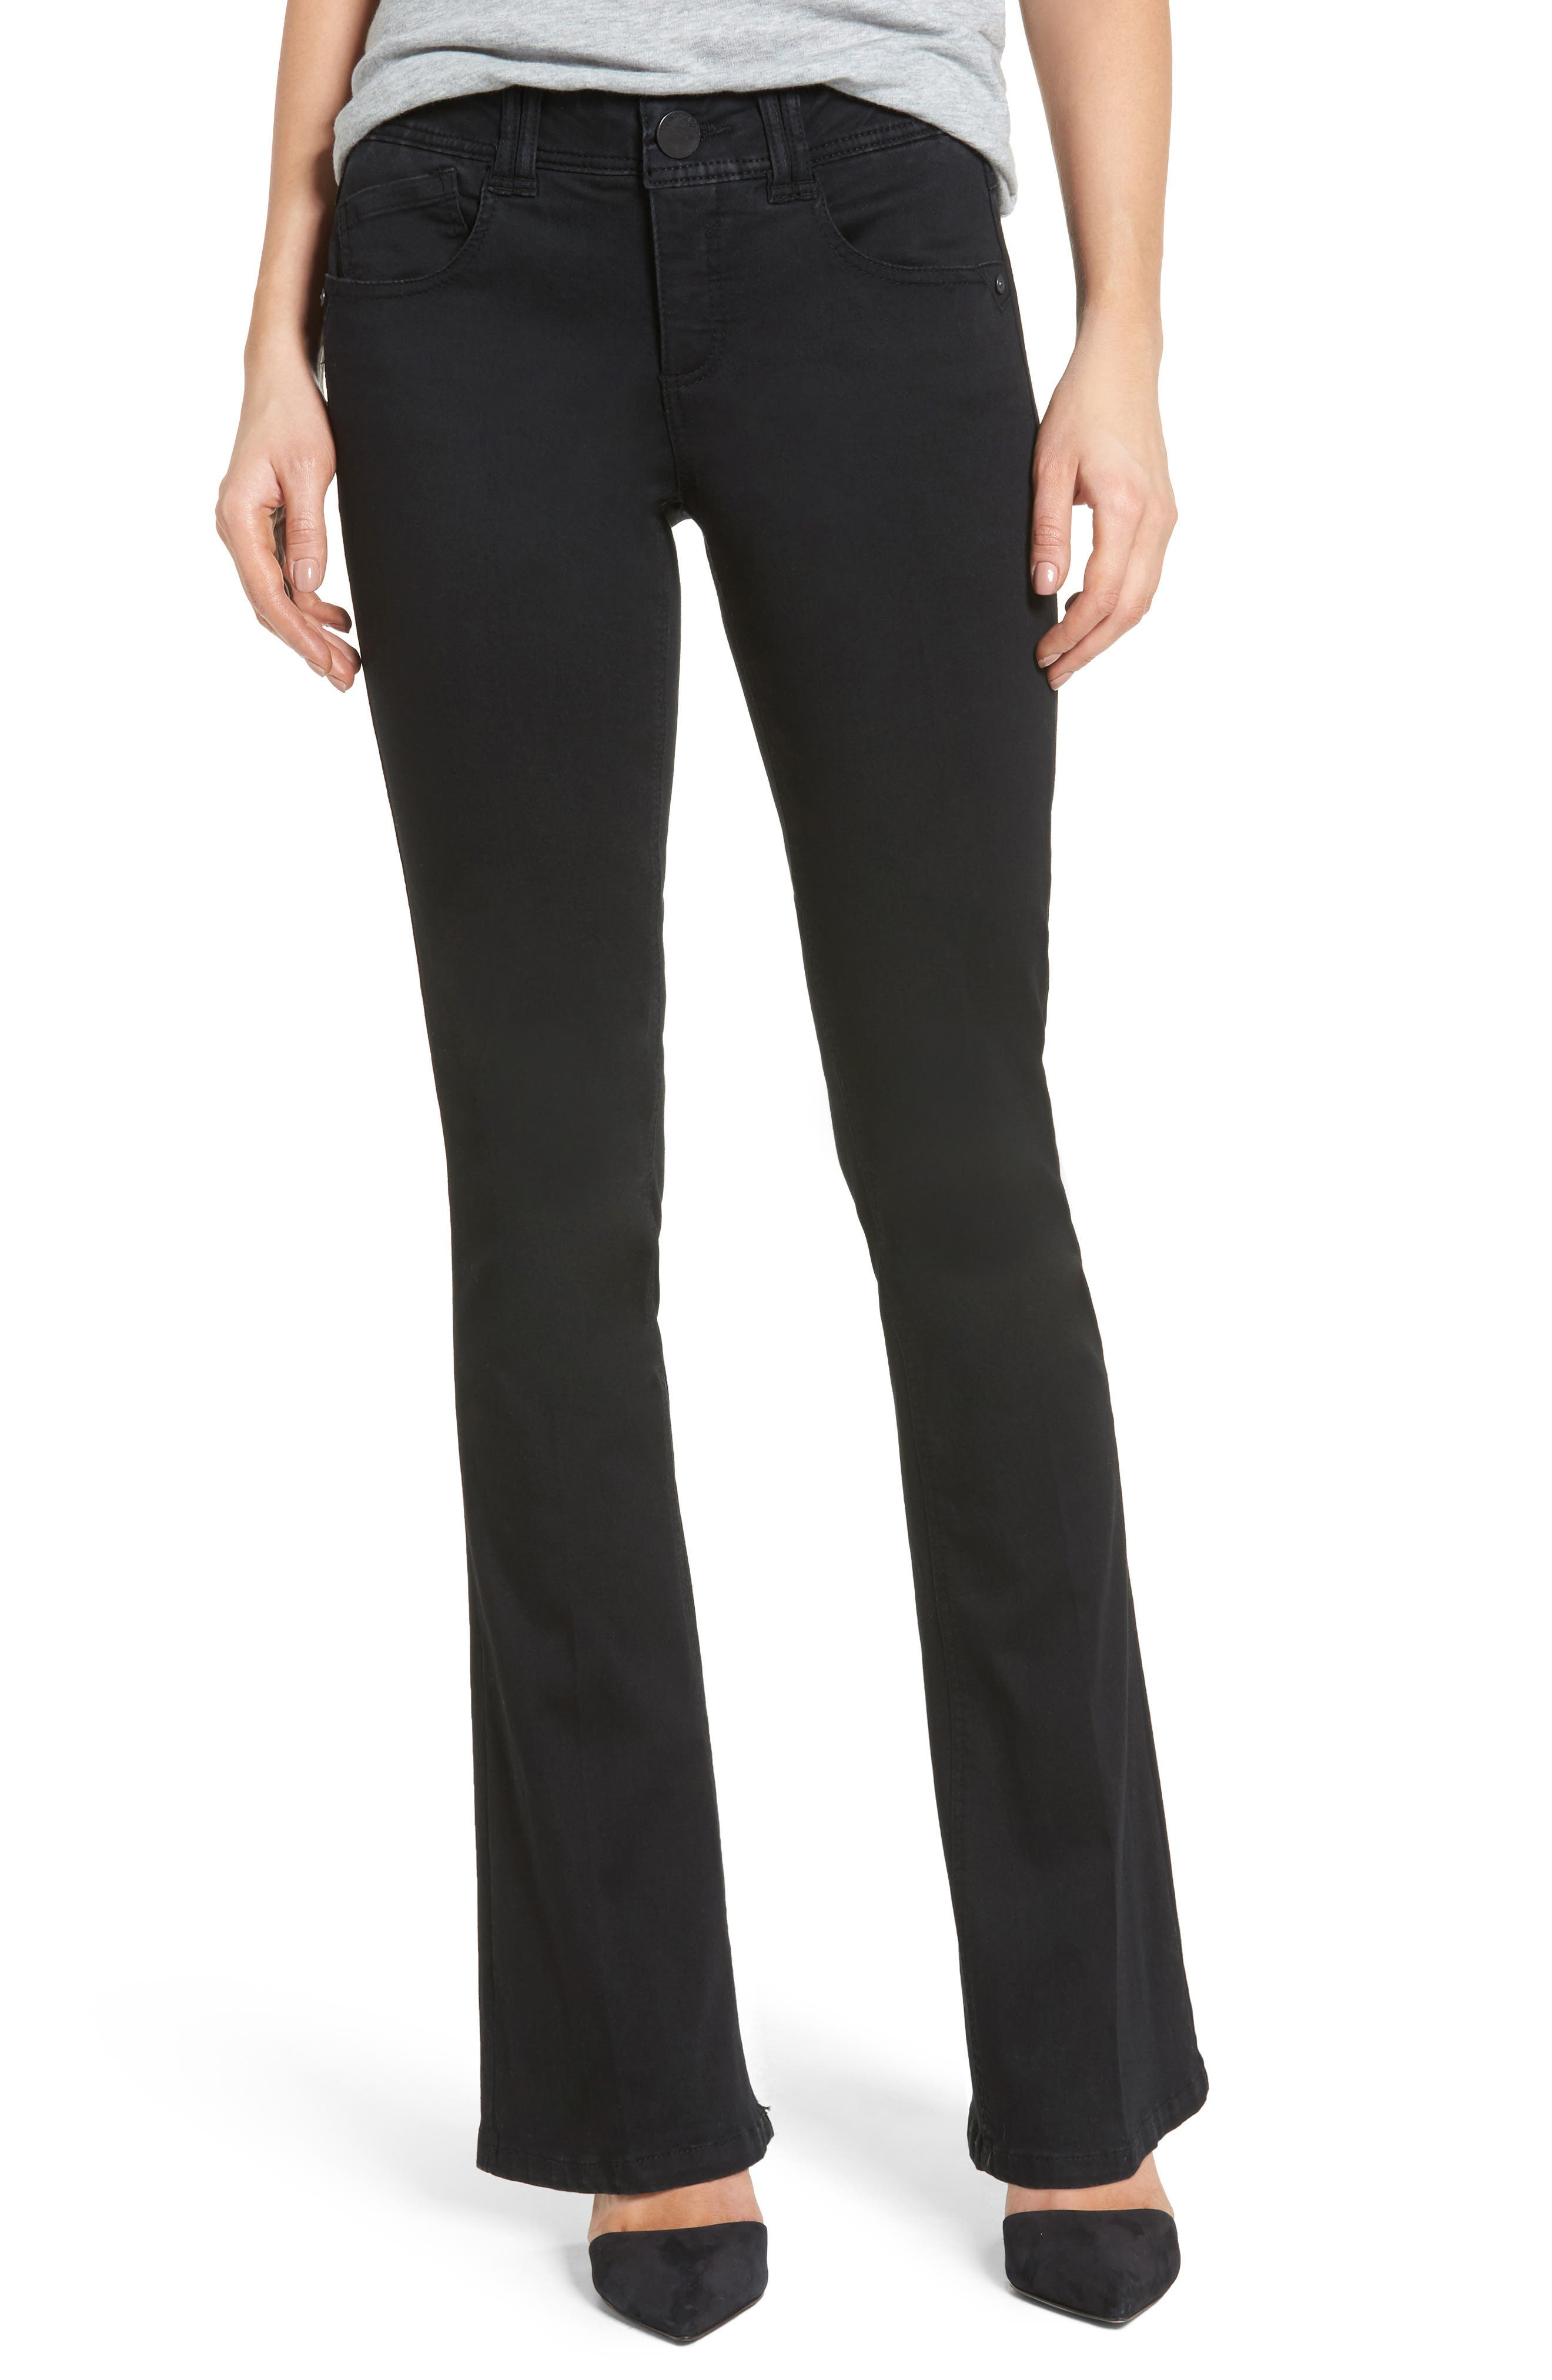 Alternate Image 1 Selected - Wit & Wisdom Ab-solution Itty Bitty Bootcut Jeans (Regular & Petite) (Nordstrom Exclusive)